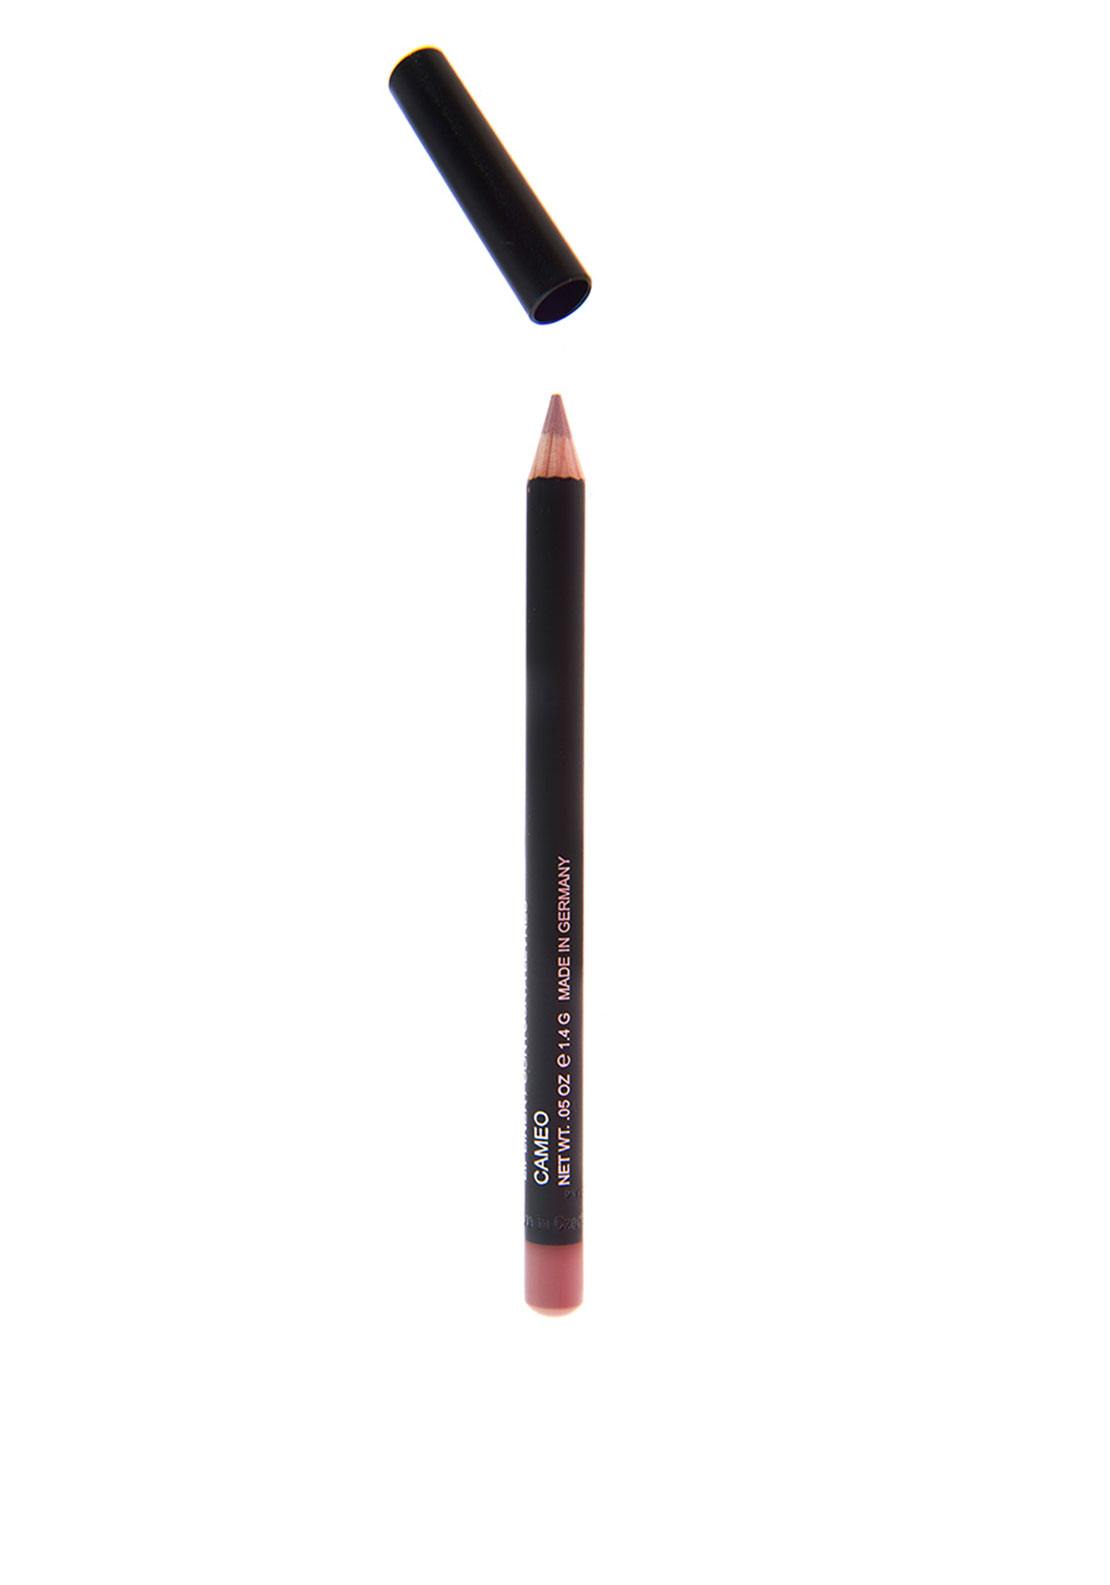 Susan McCann String of Diamonds by Lynda Strain Lip Pencil, Cameo